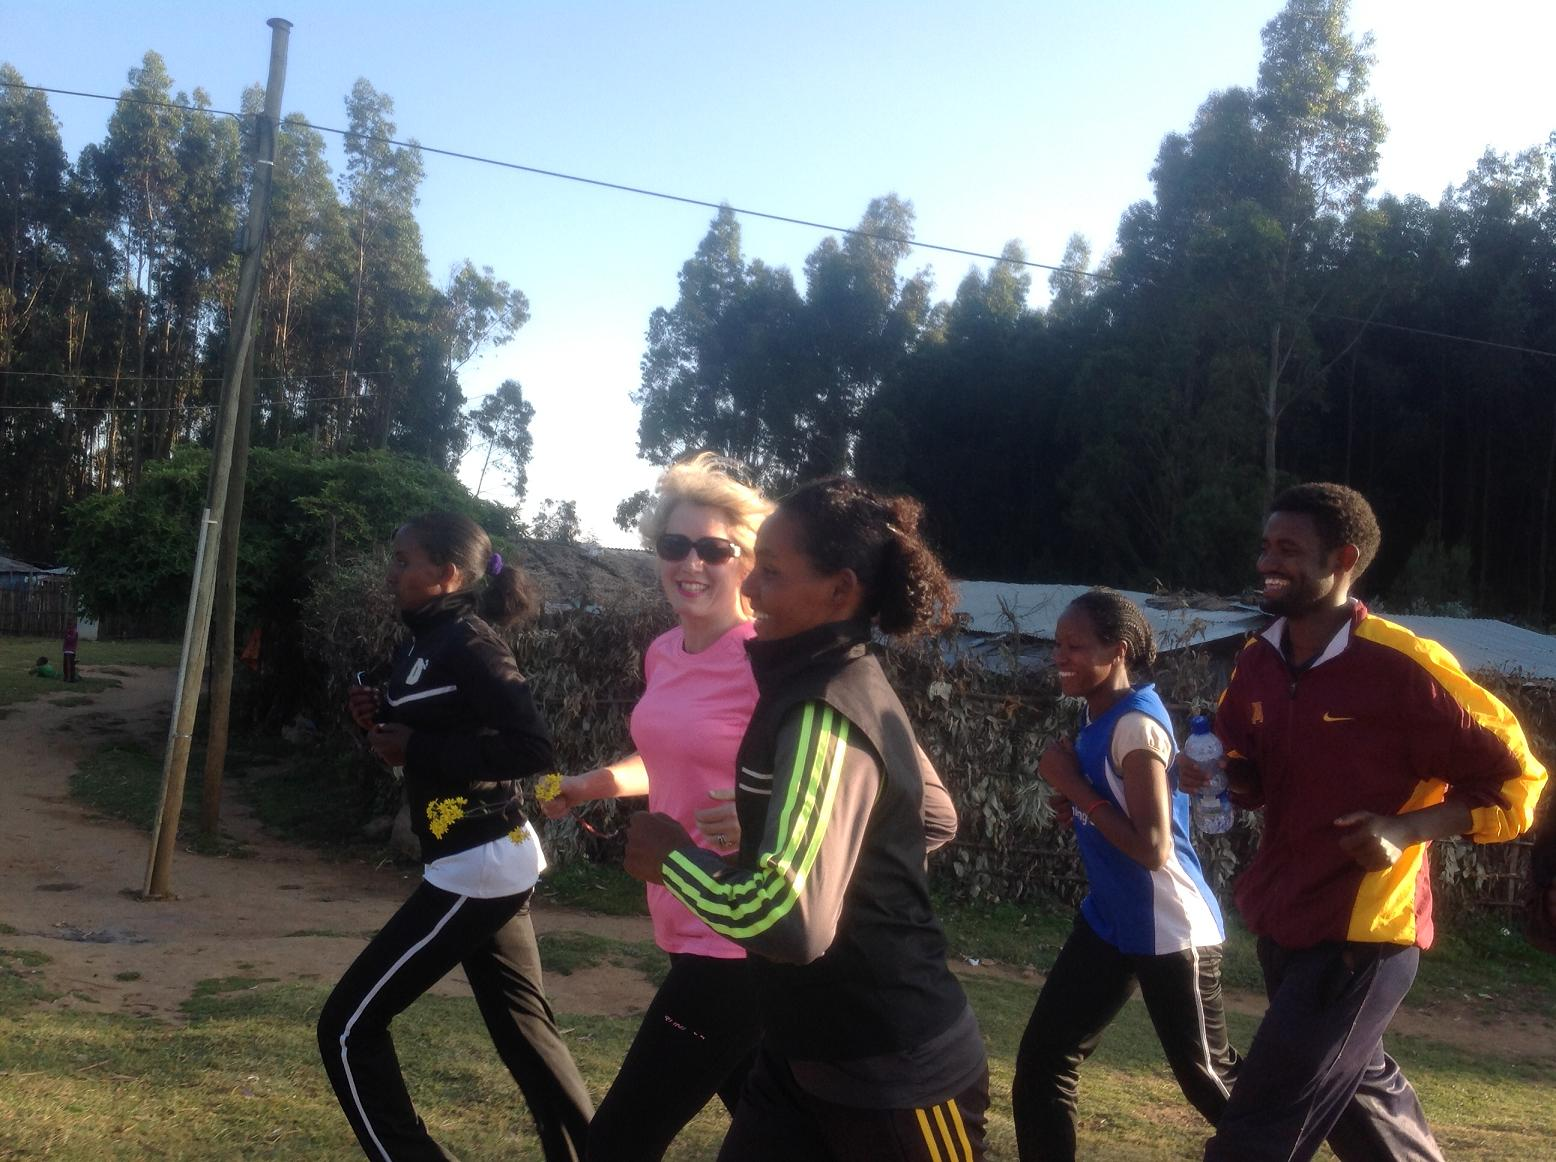 Runner calls for kit donations to Ethiopia